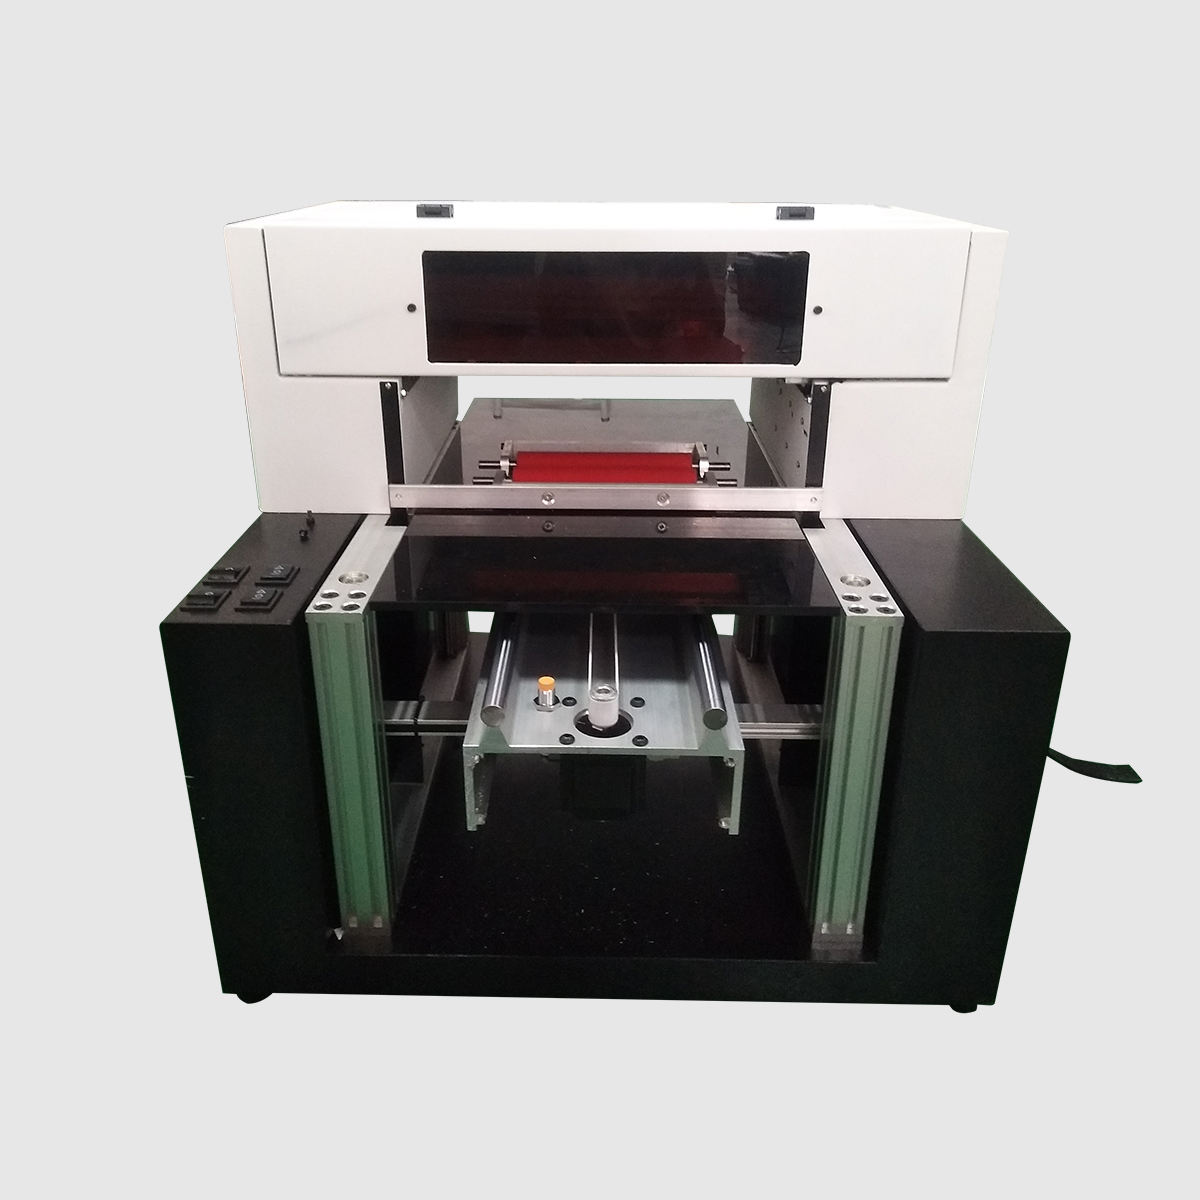 GNFEI uv led printer a4 laser label